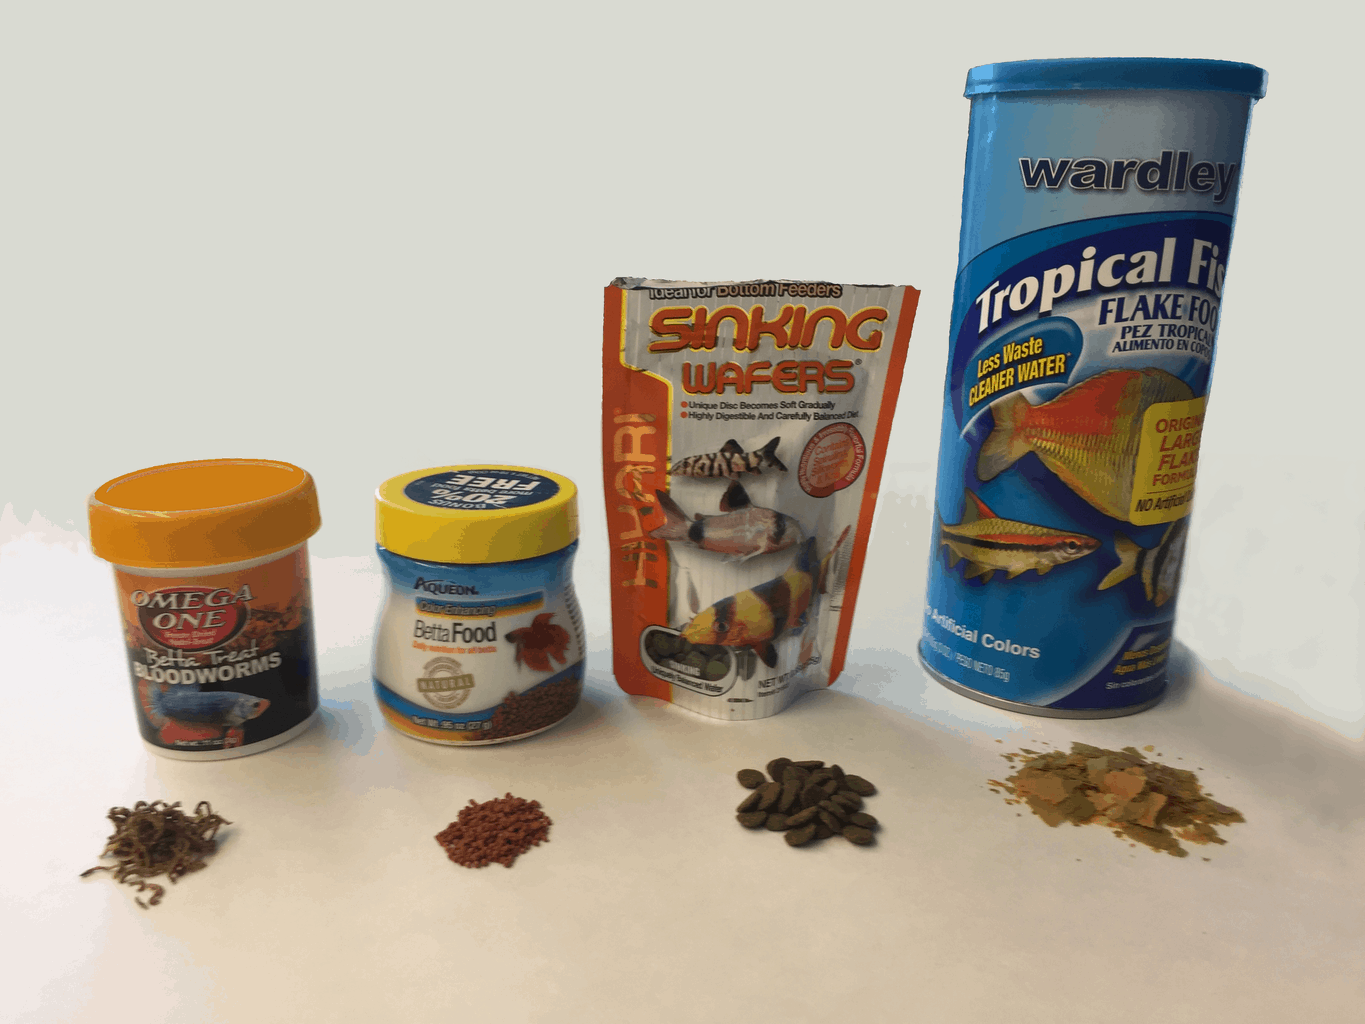 4 types of food for automatic fish feeders